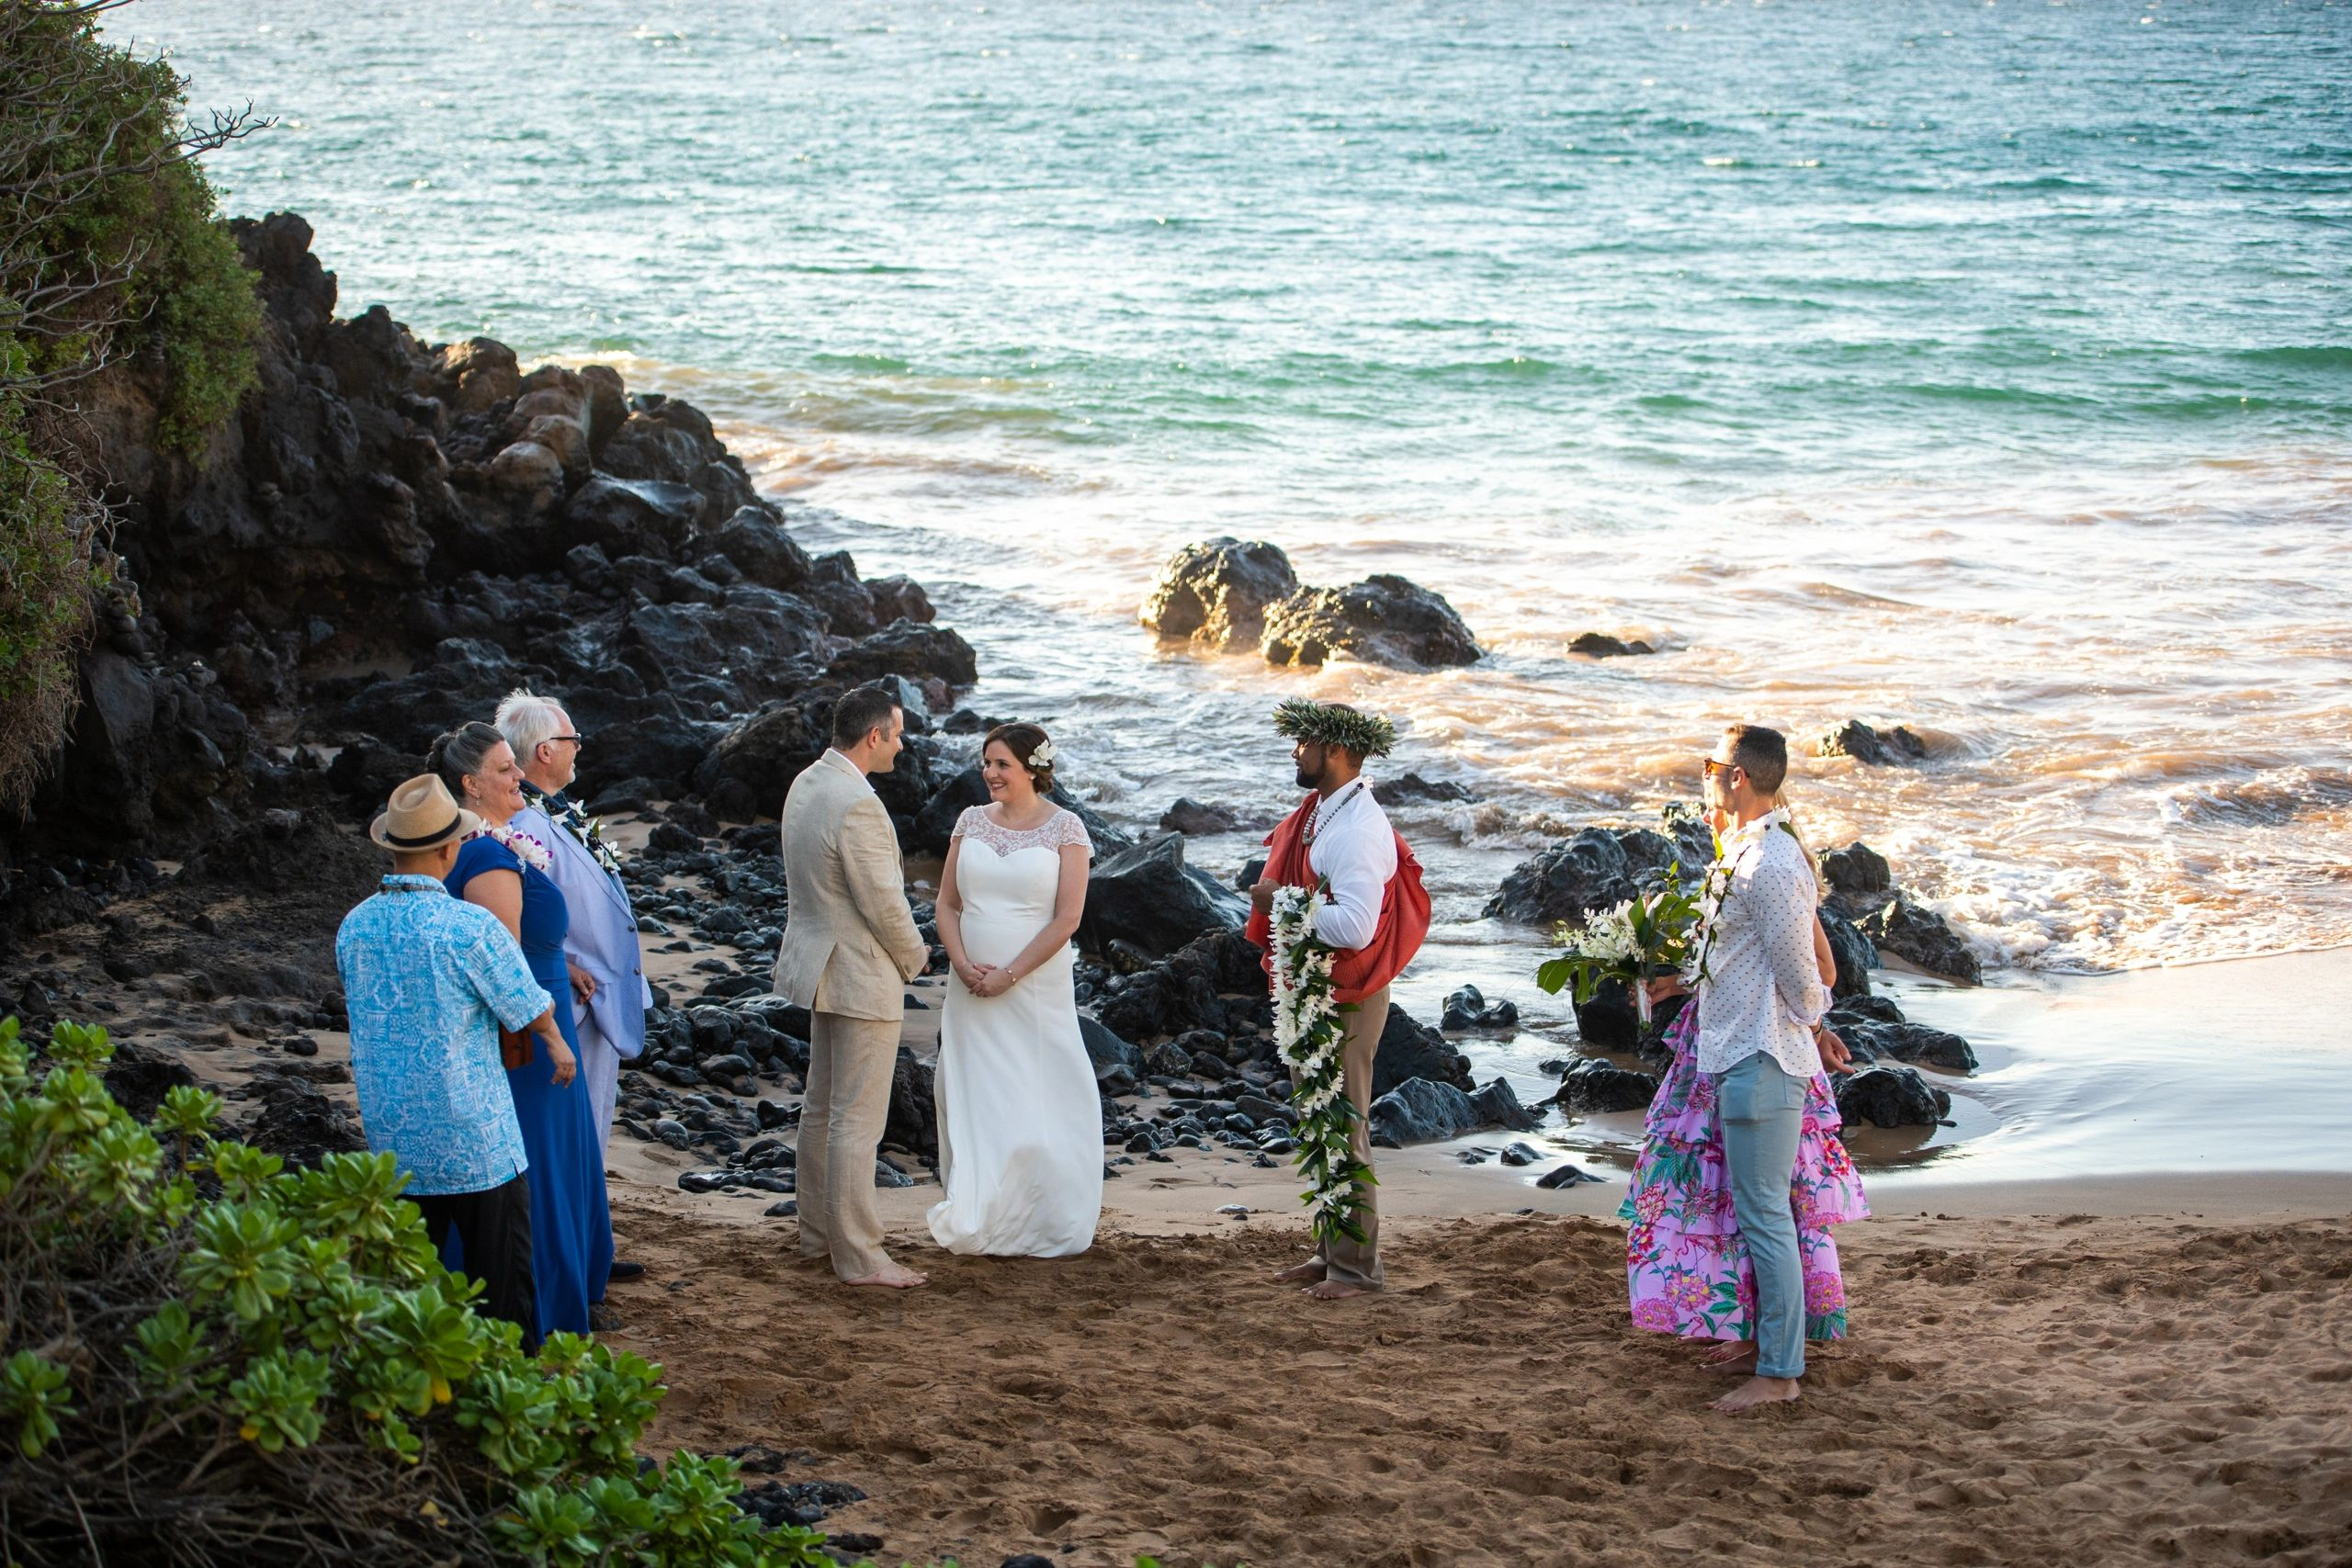 Maui Hawaii Weddings Maui beach wedding Eloped Always and Forever